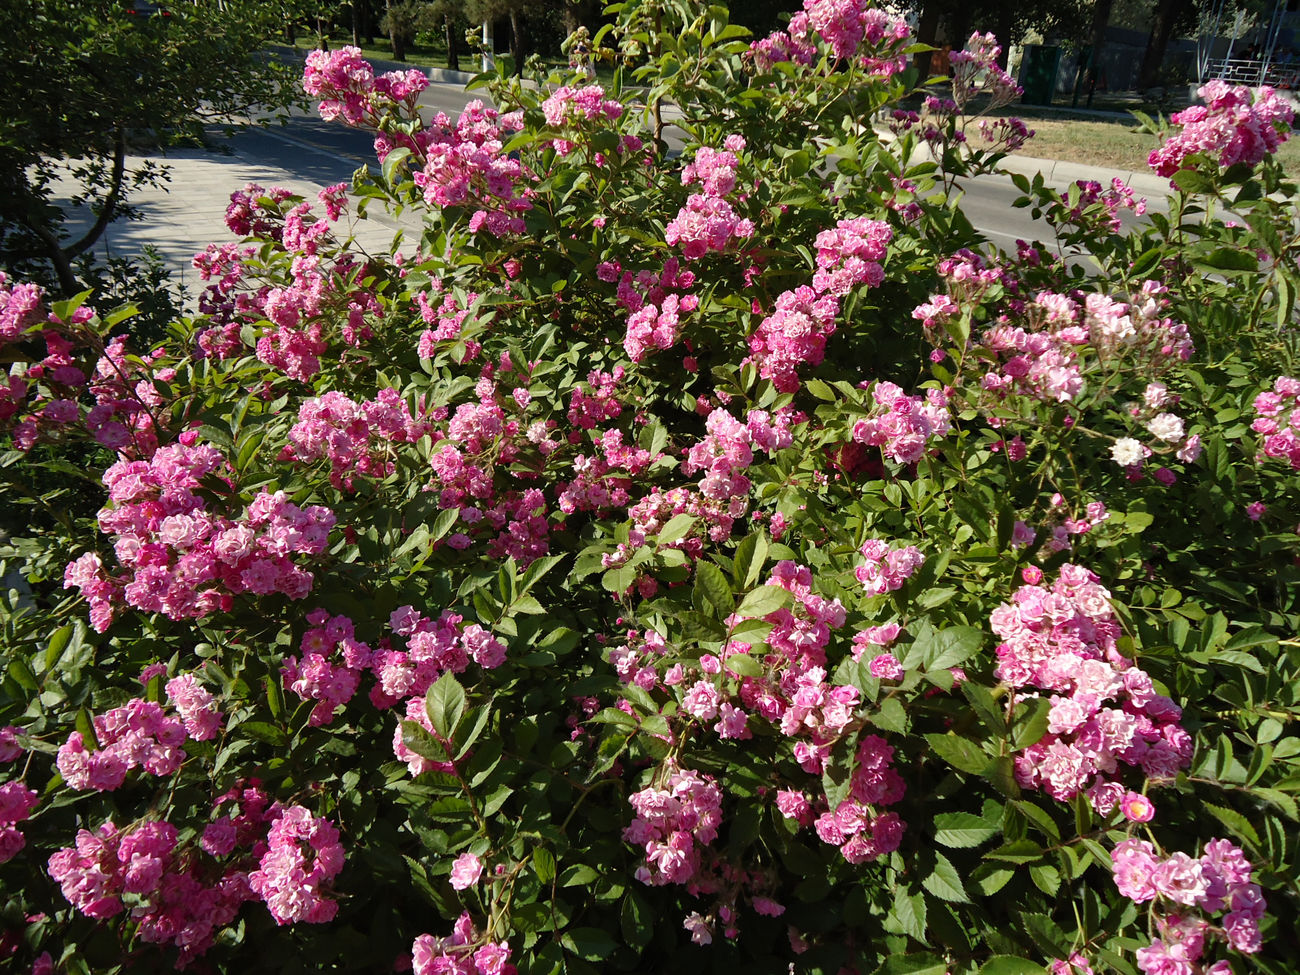 Pink rose bush. Bush Exuberant Flourishing Flowerets Flowering Flowers June Lila Lush Foliage Pink Purple Roses Summer